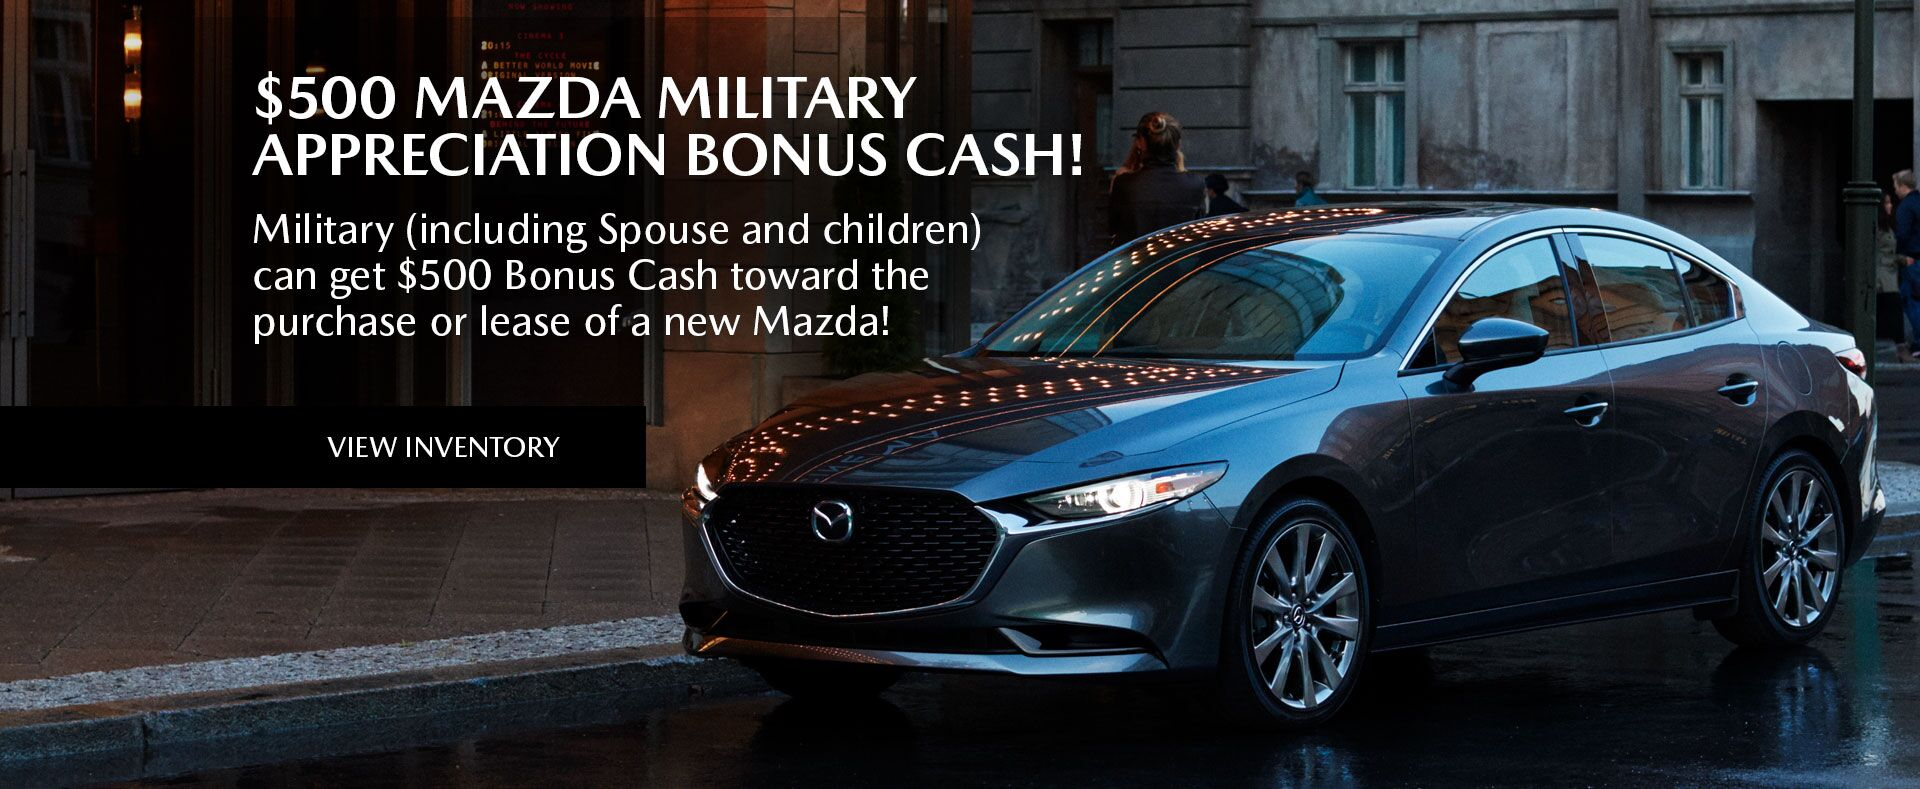 Mazda Military Appreciation Bonus Cash